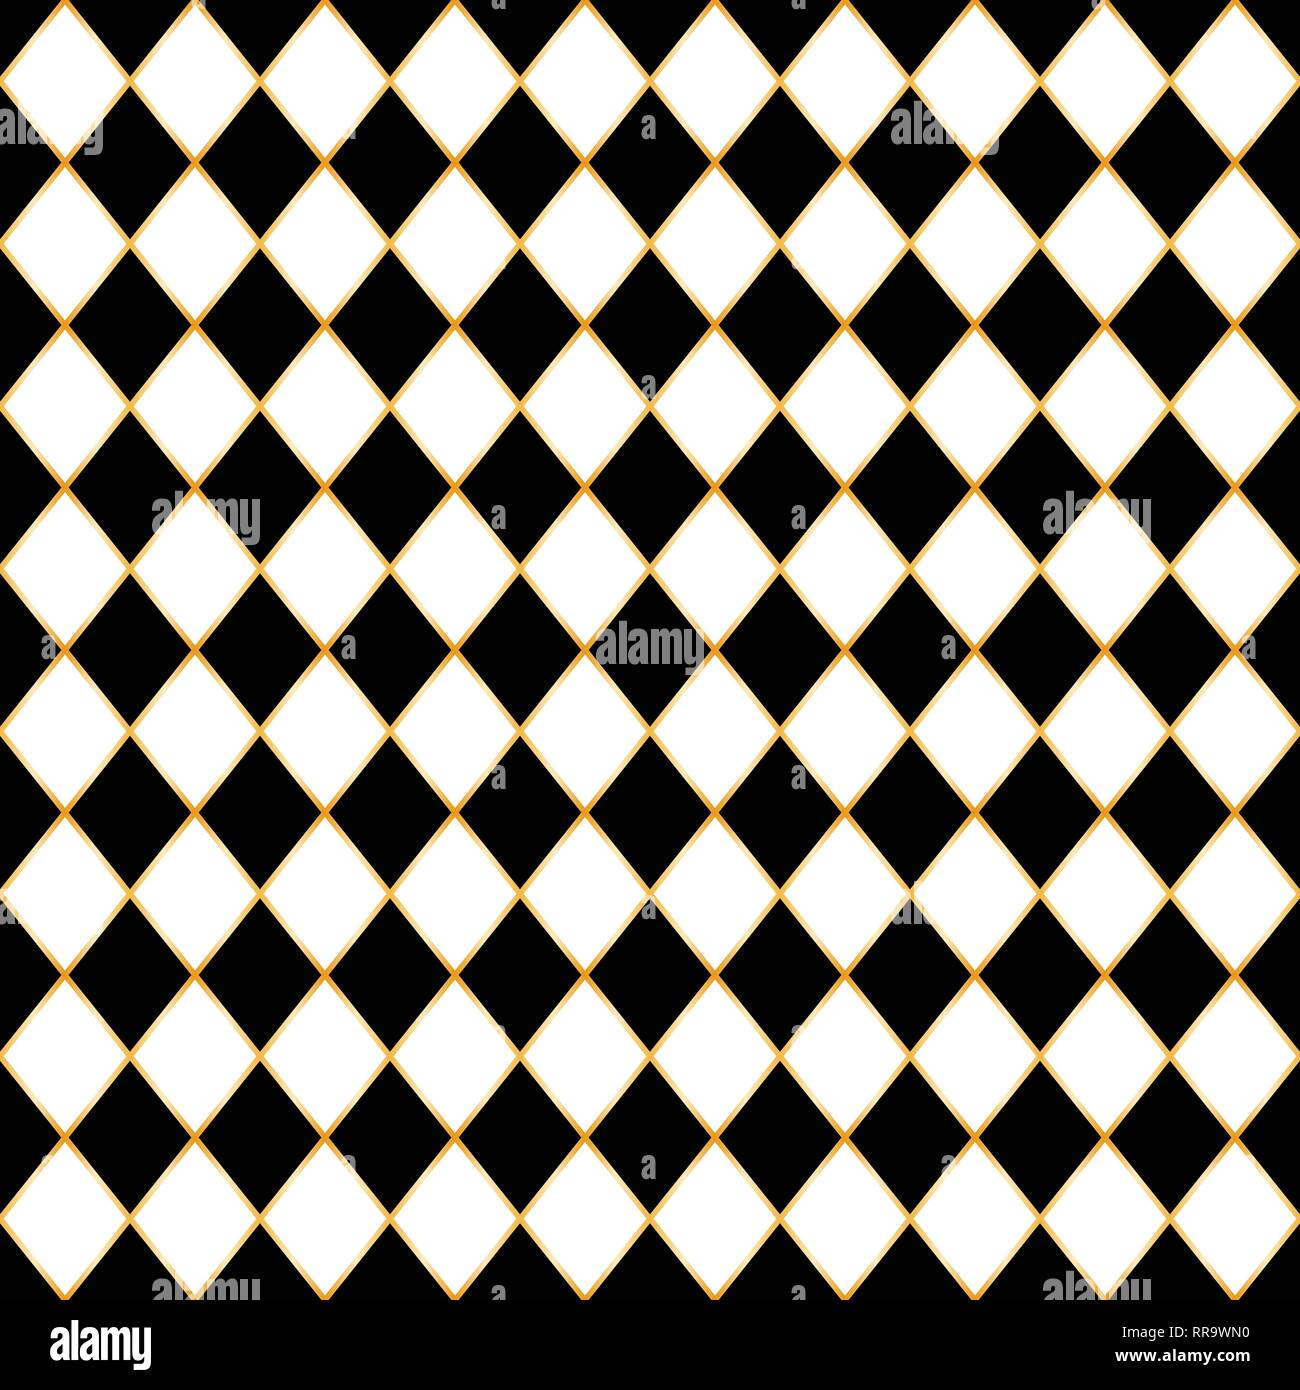 Chess board seamless pattern with gold frame. - Stock Image